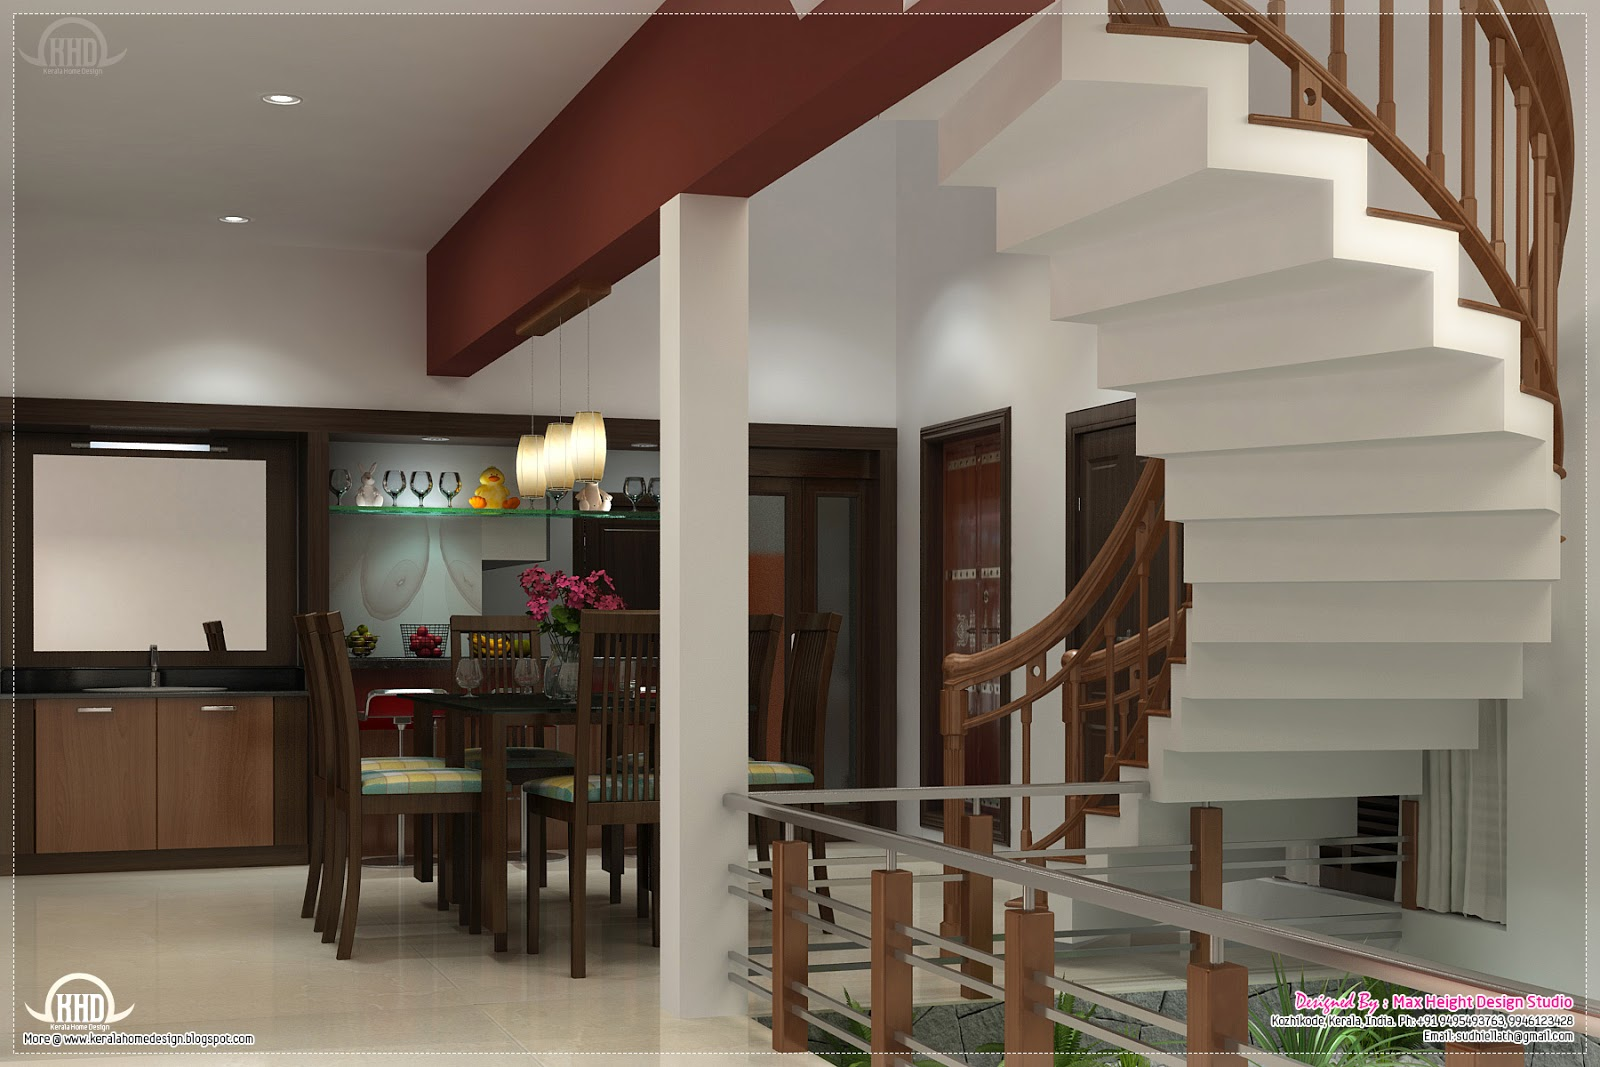 Home interior design ideas kerala home design and floor plans - Interior design for home ...